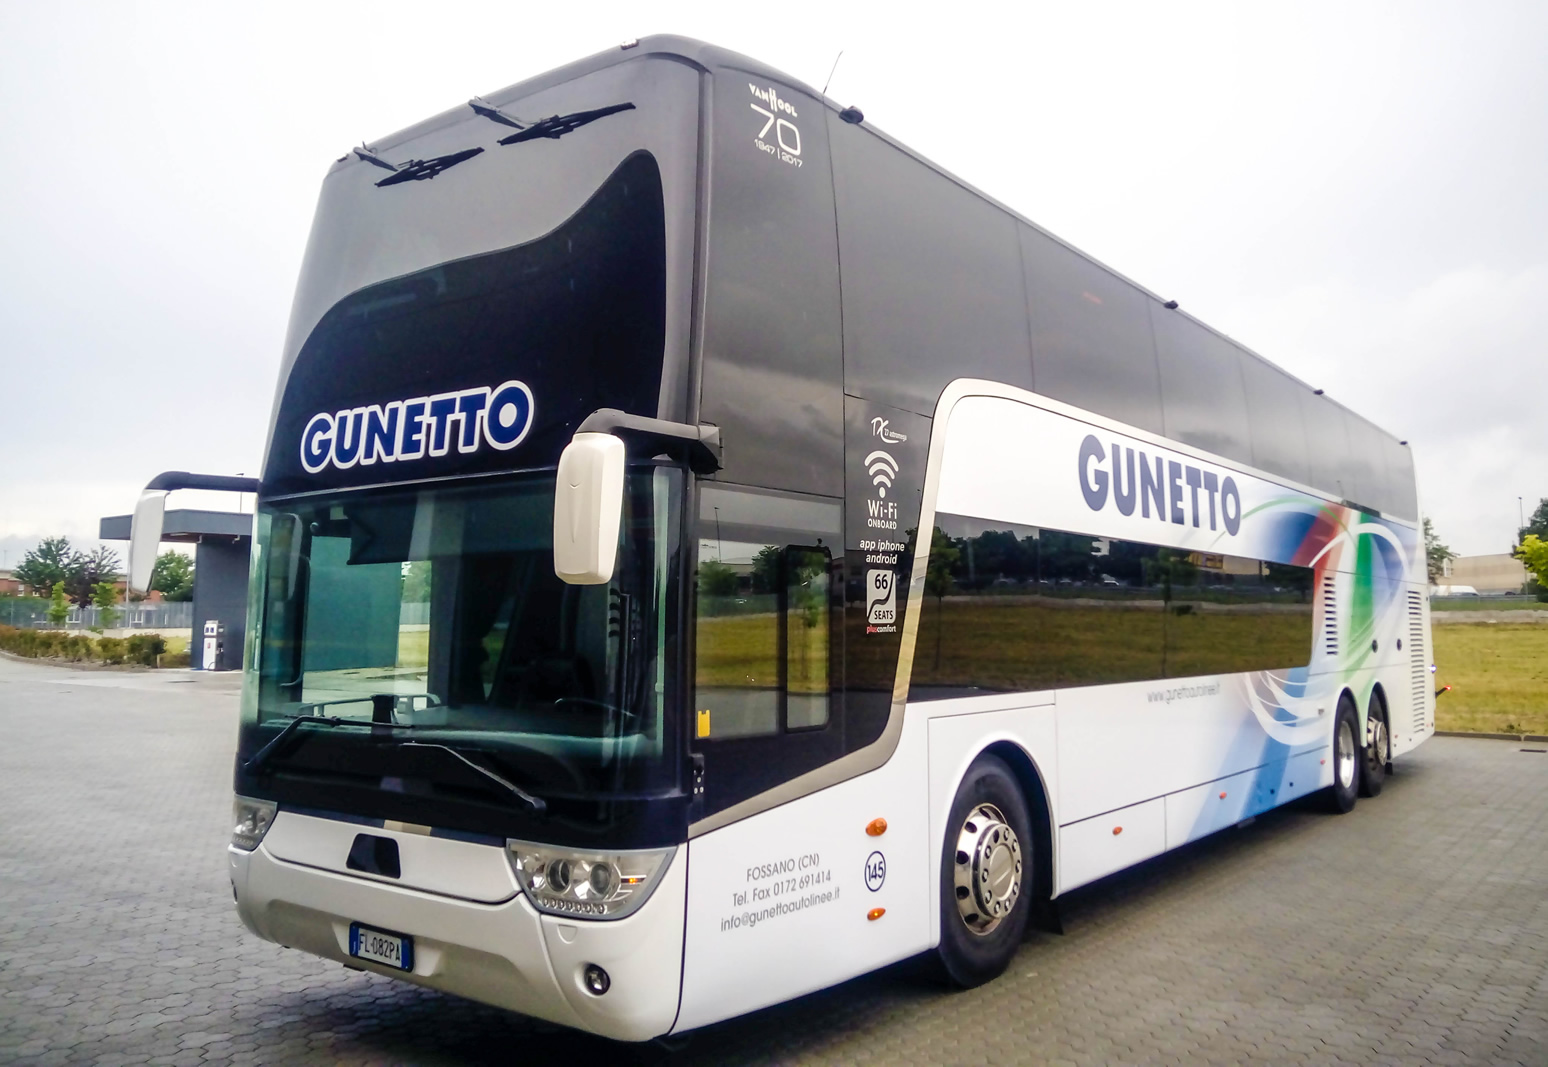 VANHOOL NV92XL